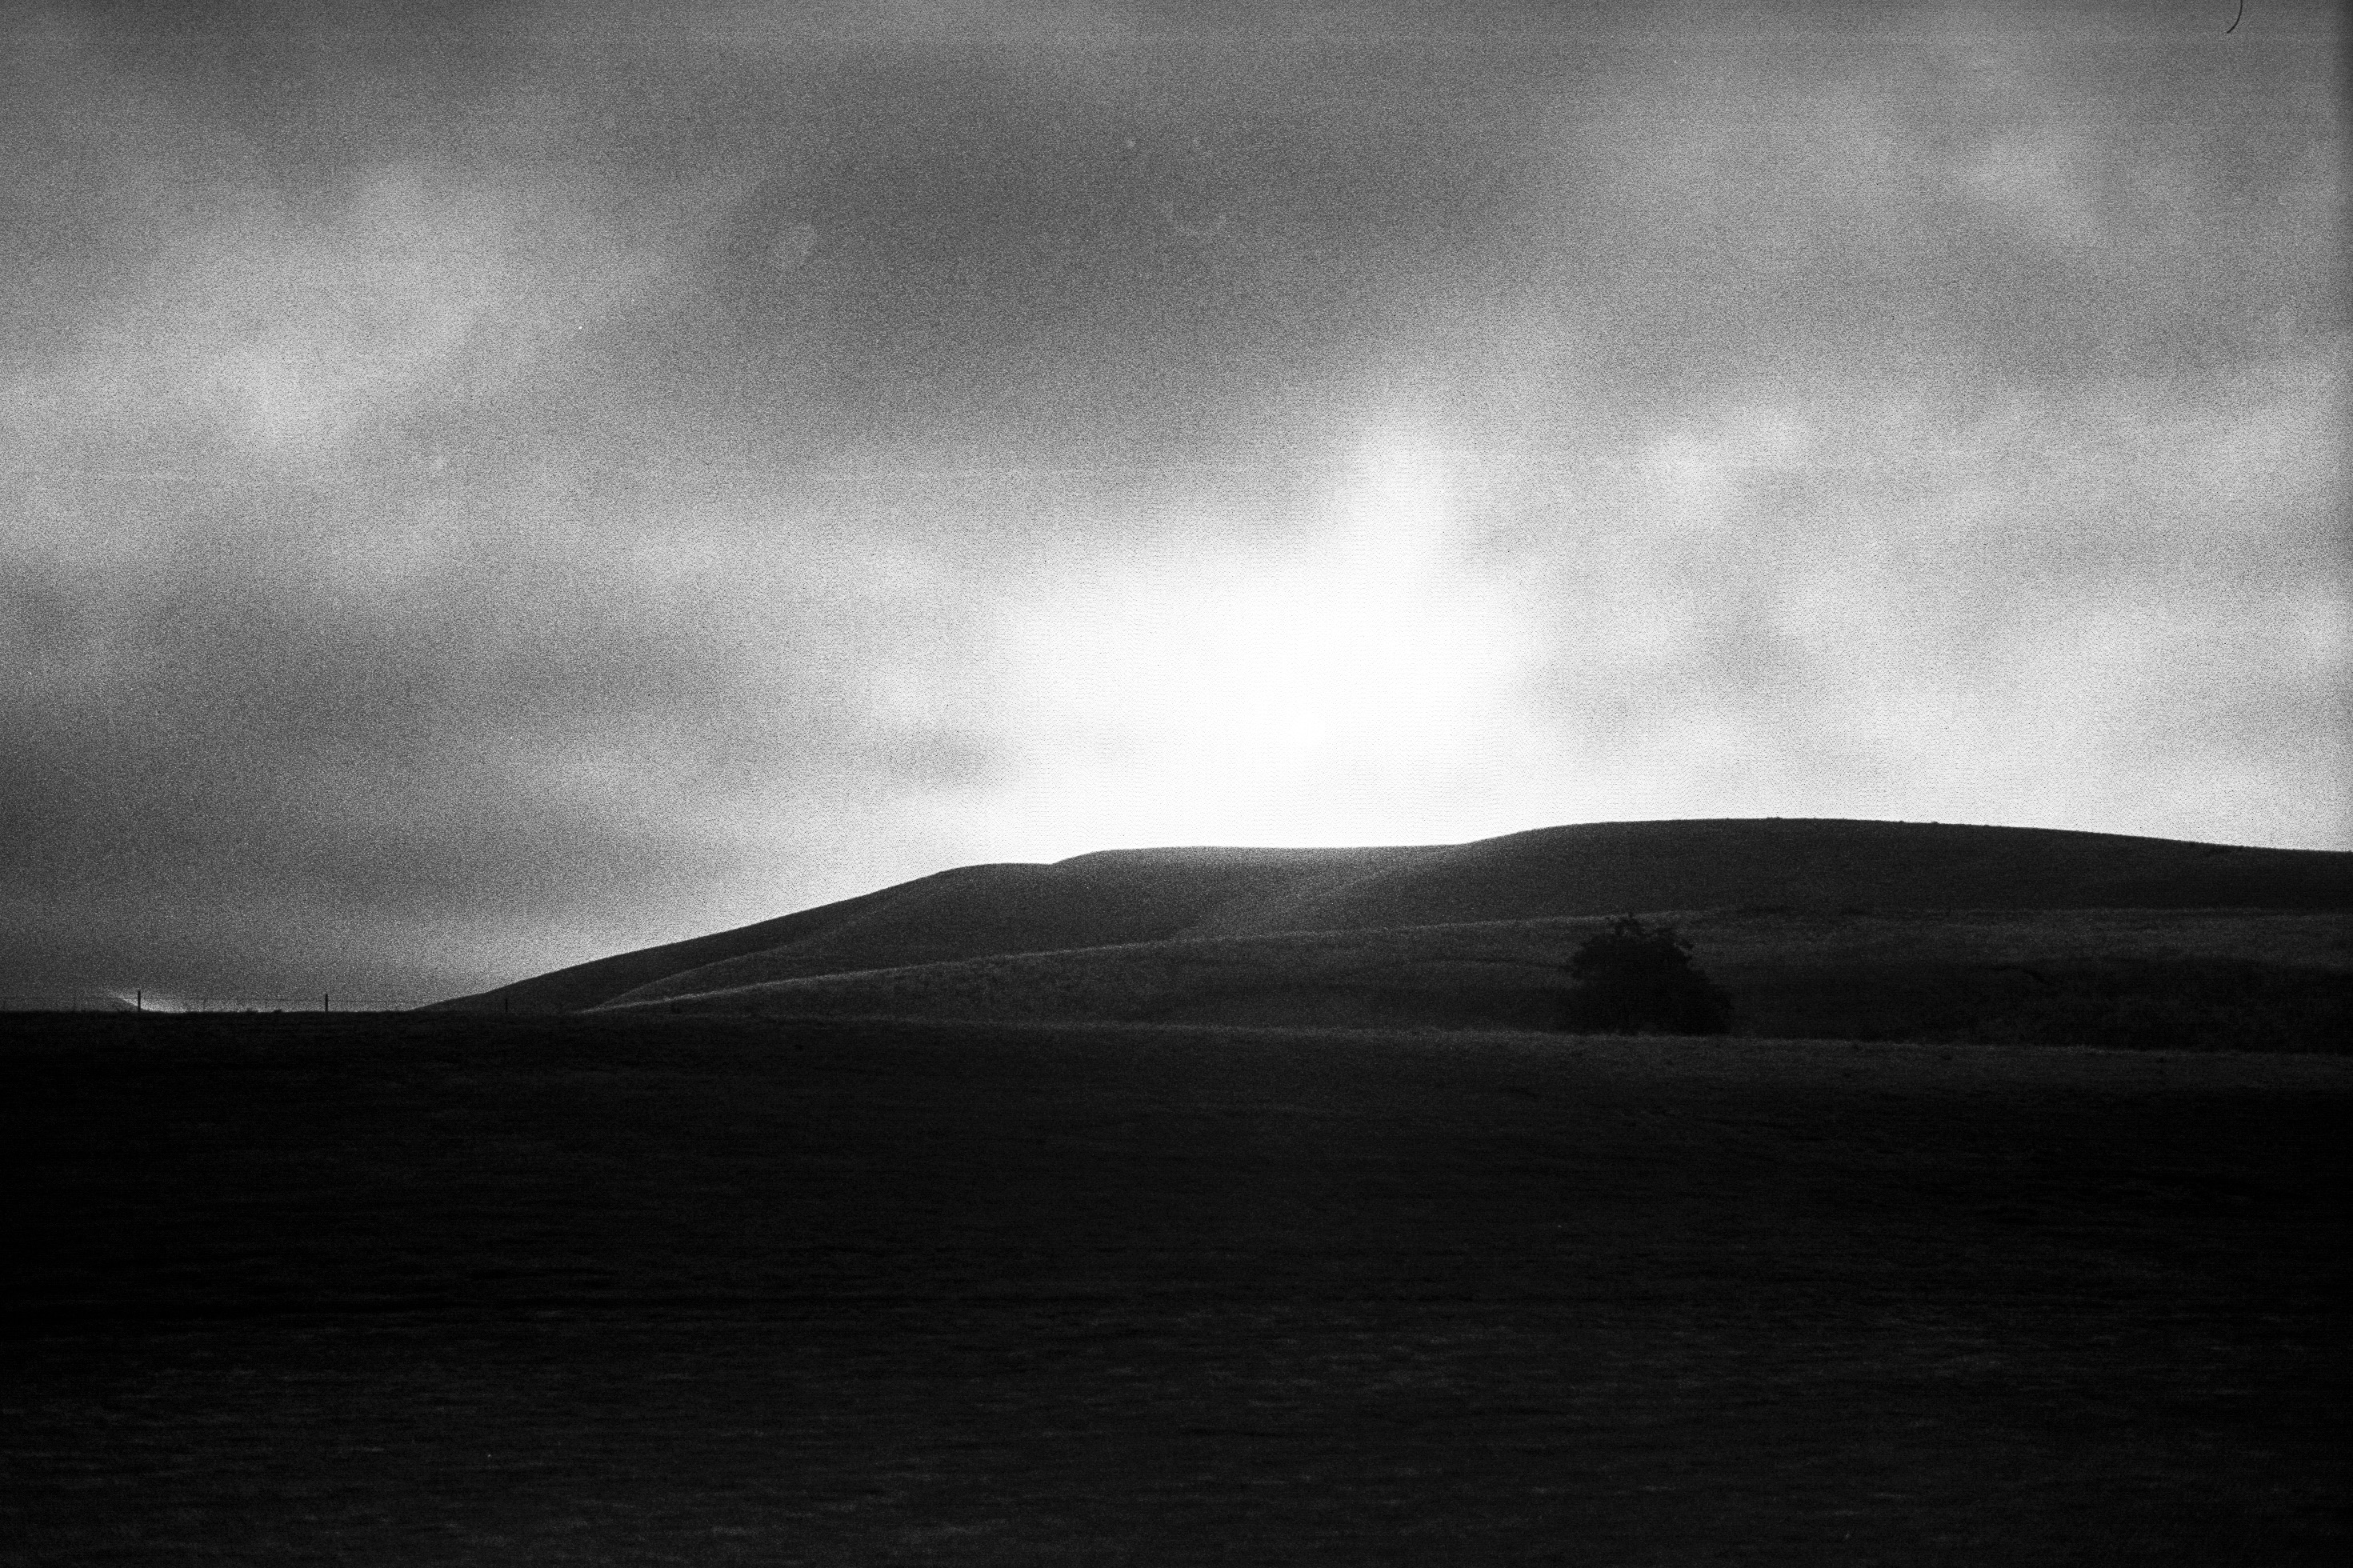 The sun rises against a backdrop of clouds, over a barren, ominous hill.